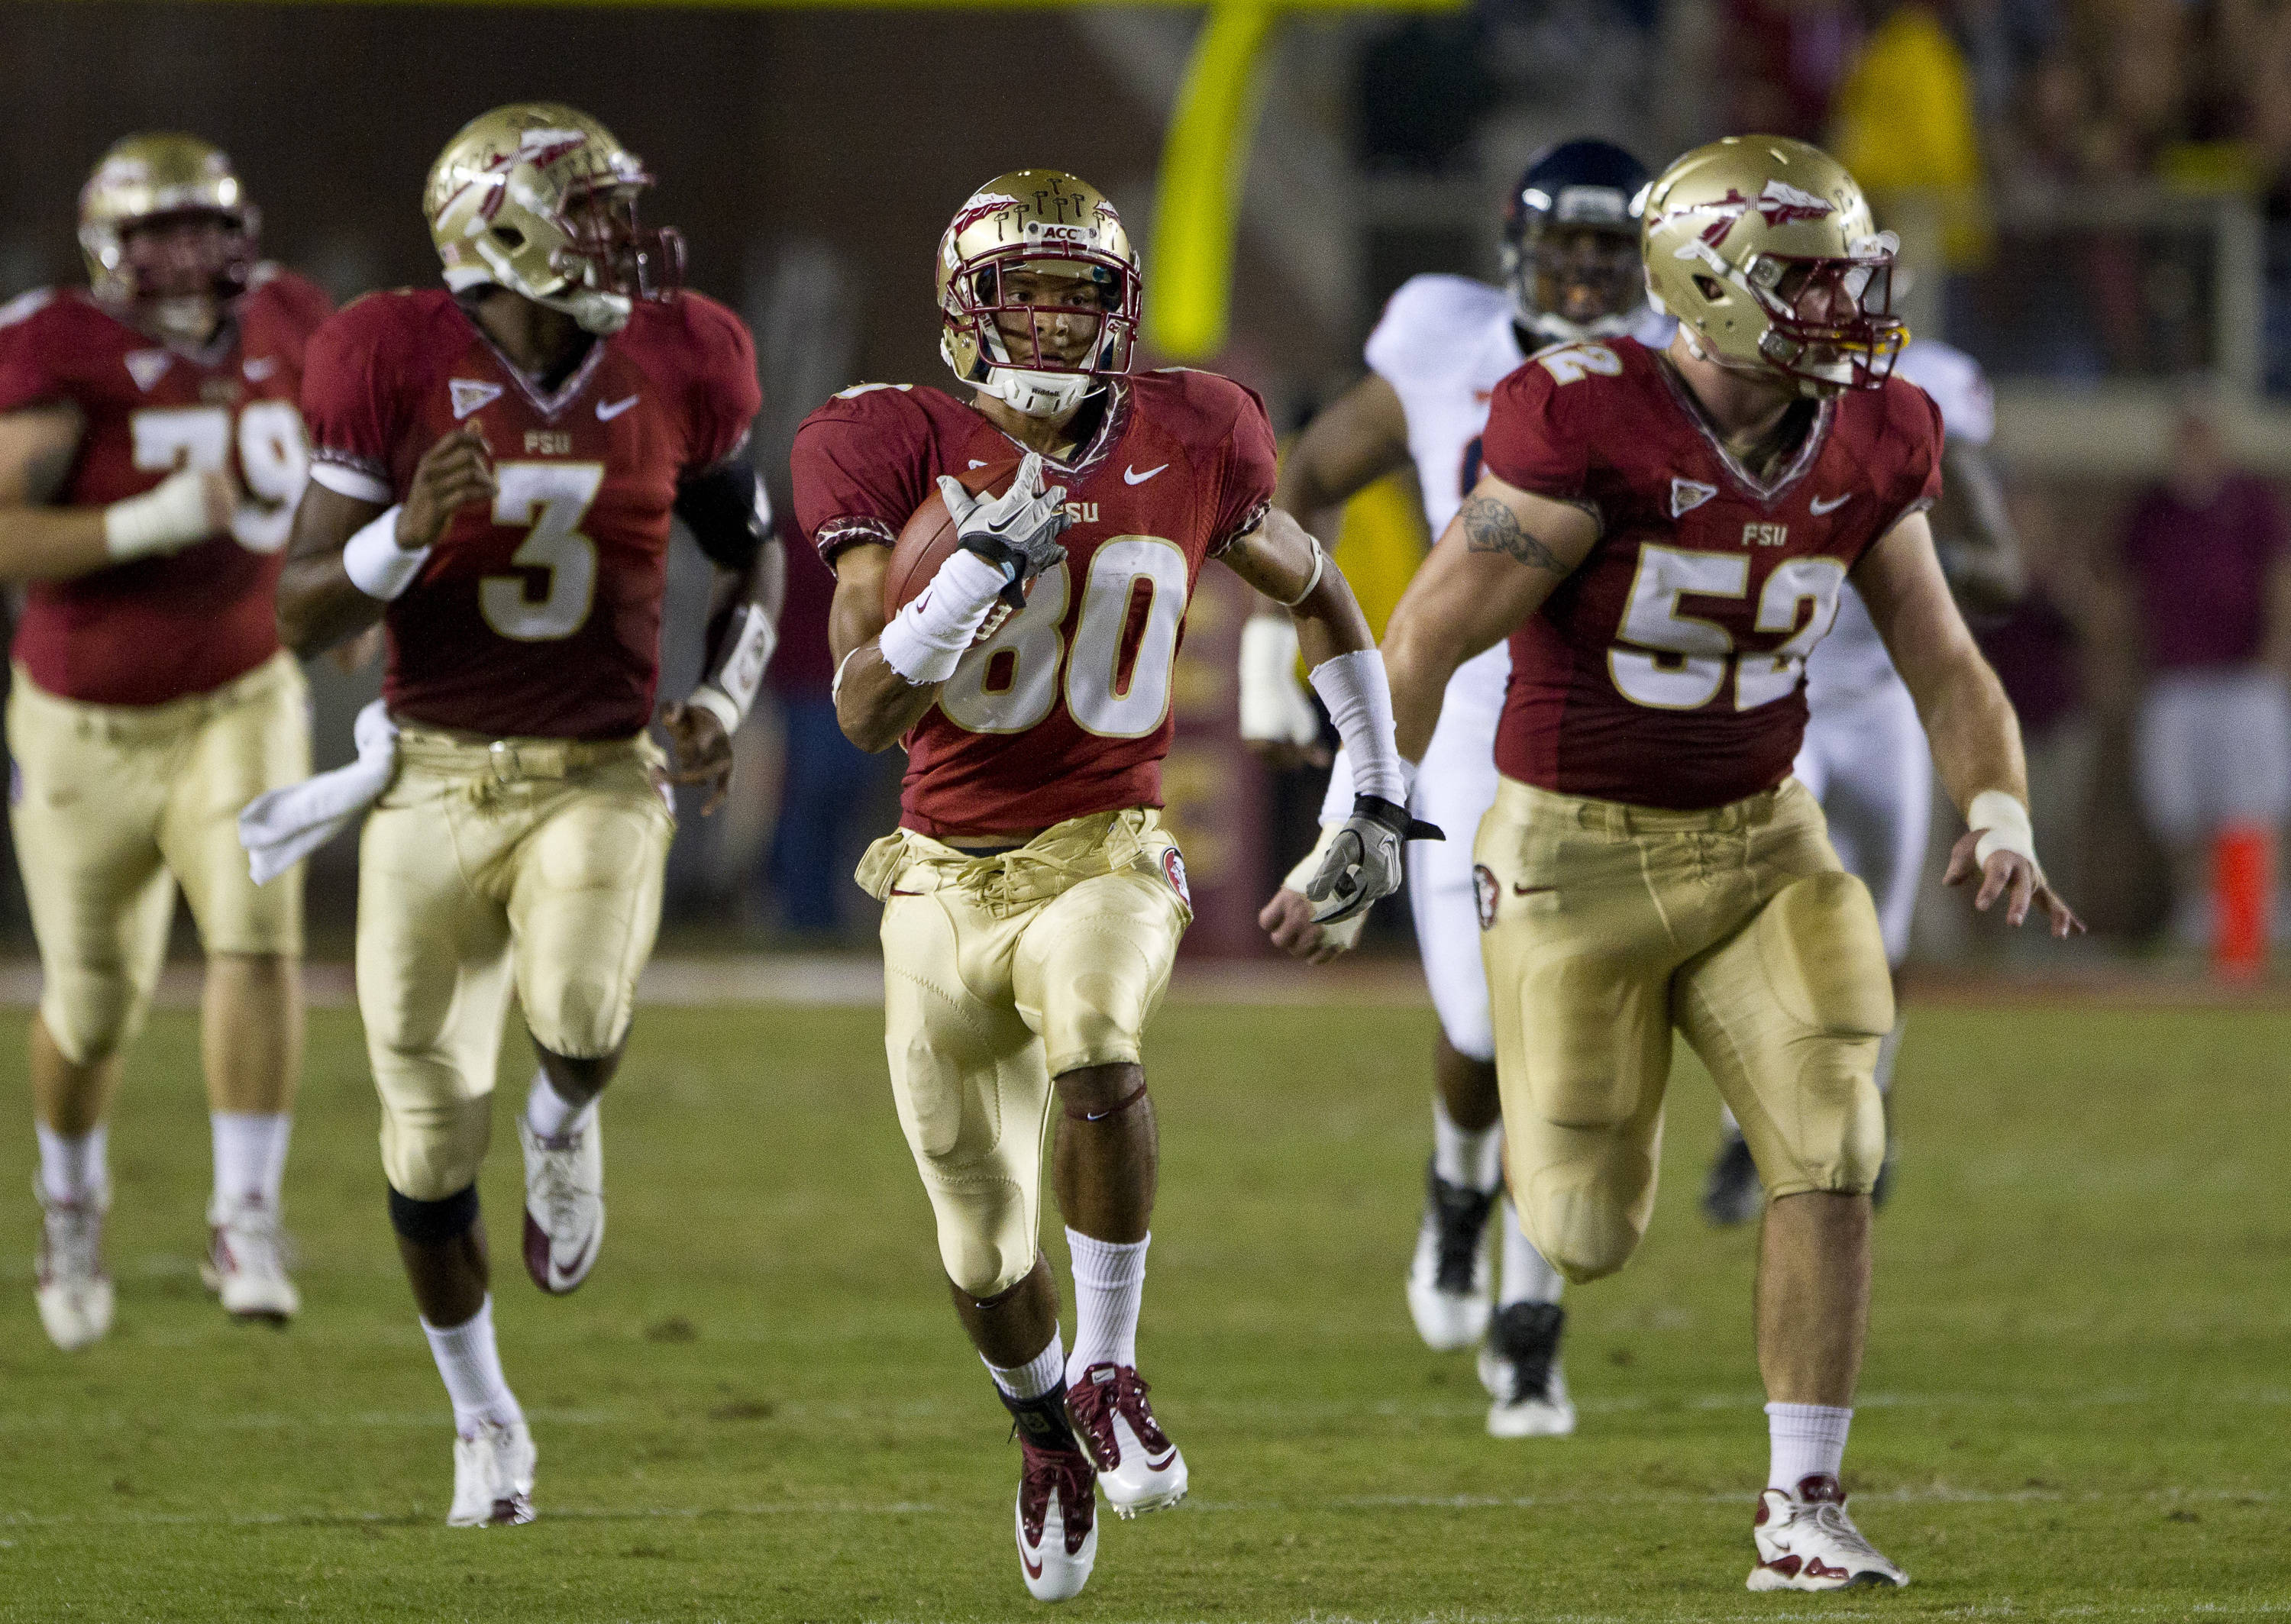 Rashad Greene (80) carries the ball down the field during the game against Virginia on November 19, 2011.